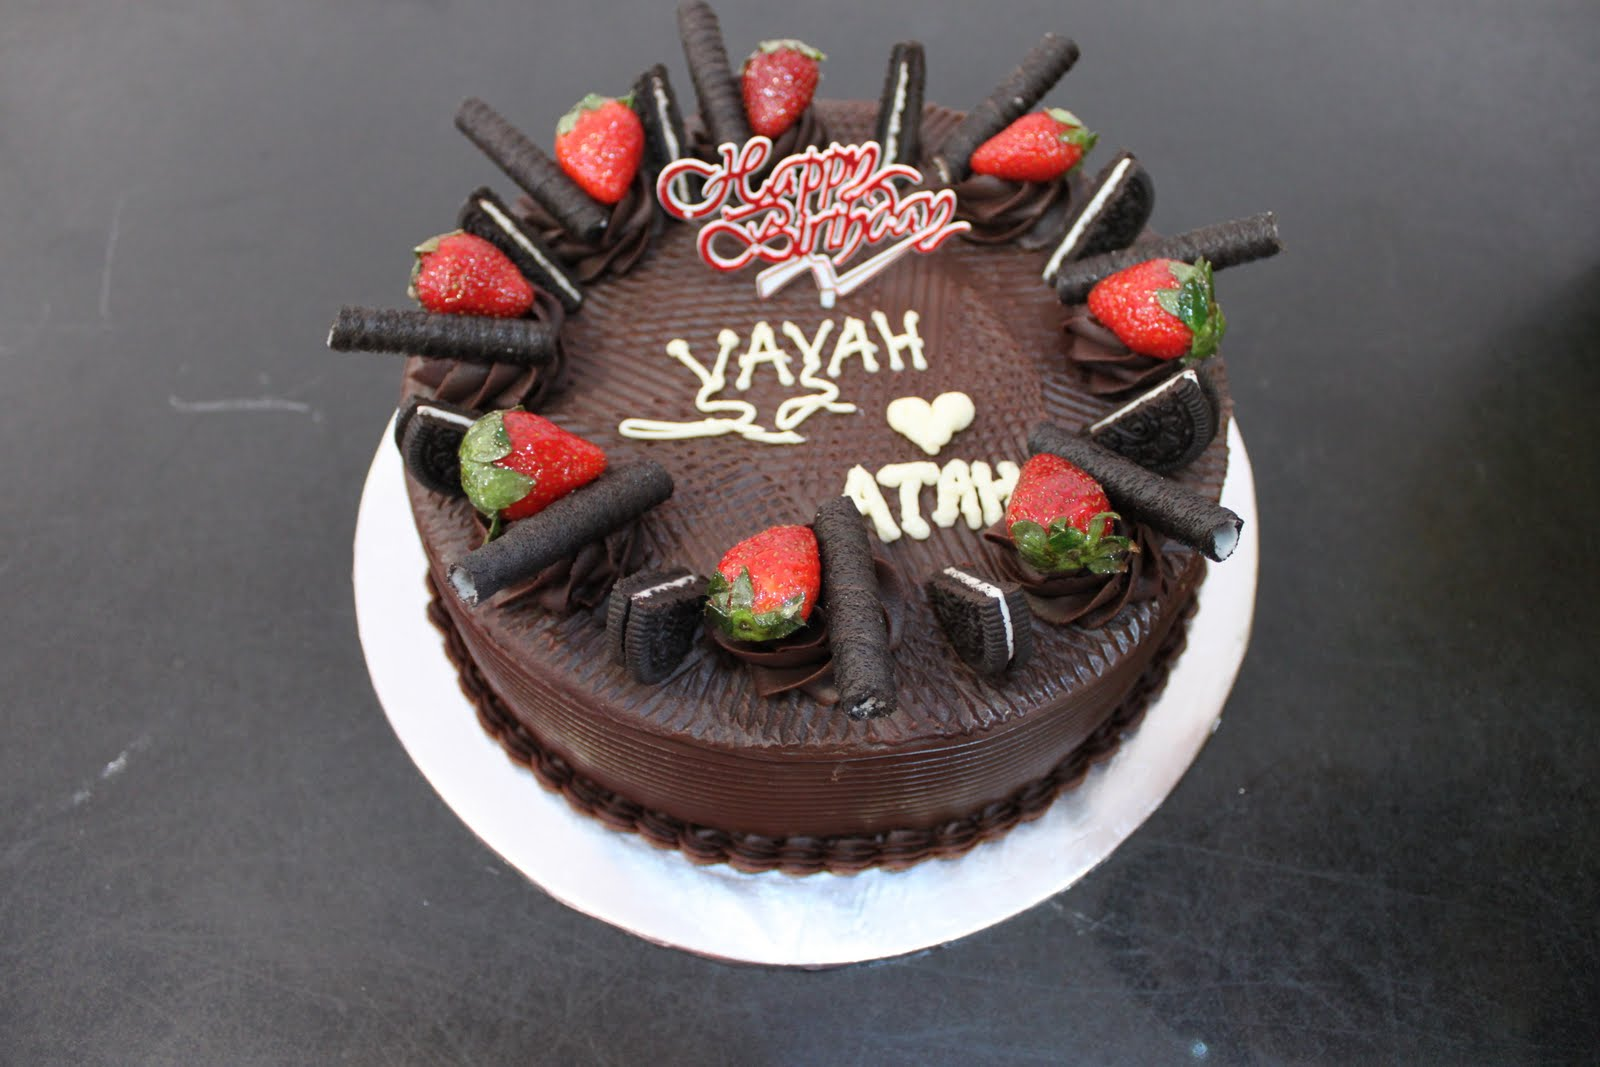 rahas oven Birthday cake Moist Chocolate Cake